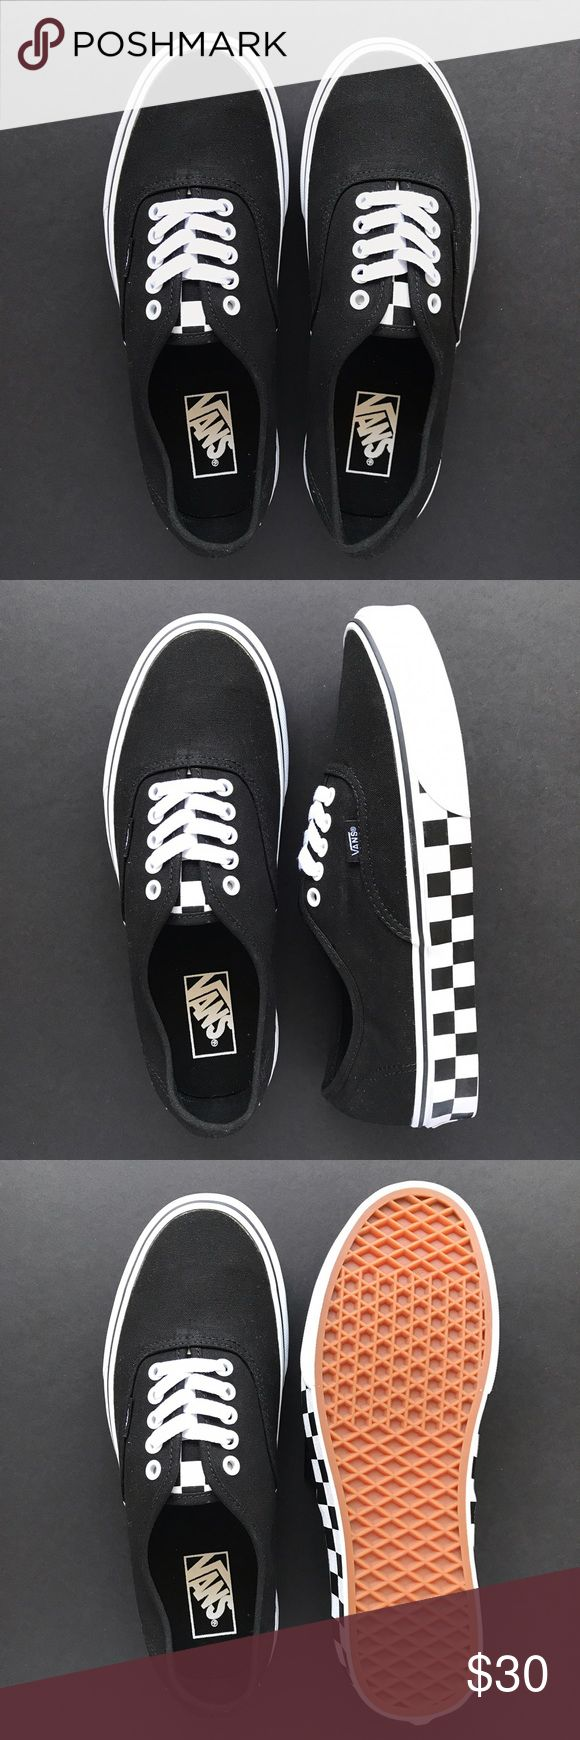 Vans Authentic Black Canvas Checkerboard Sole Black canvas Vans Authentic with checkerboard print on side of soles. Very cool!  Box not included. US Size: Women's 10.5, Men's 9 Vans Shoes Sneakers